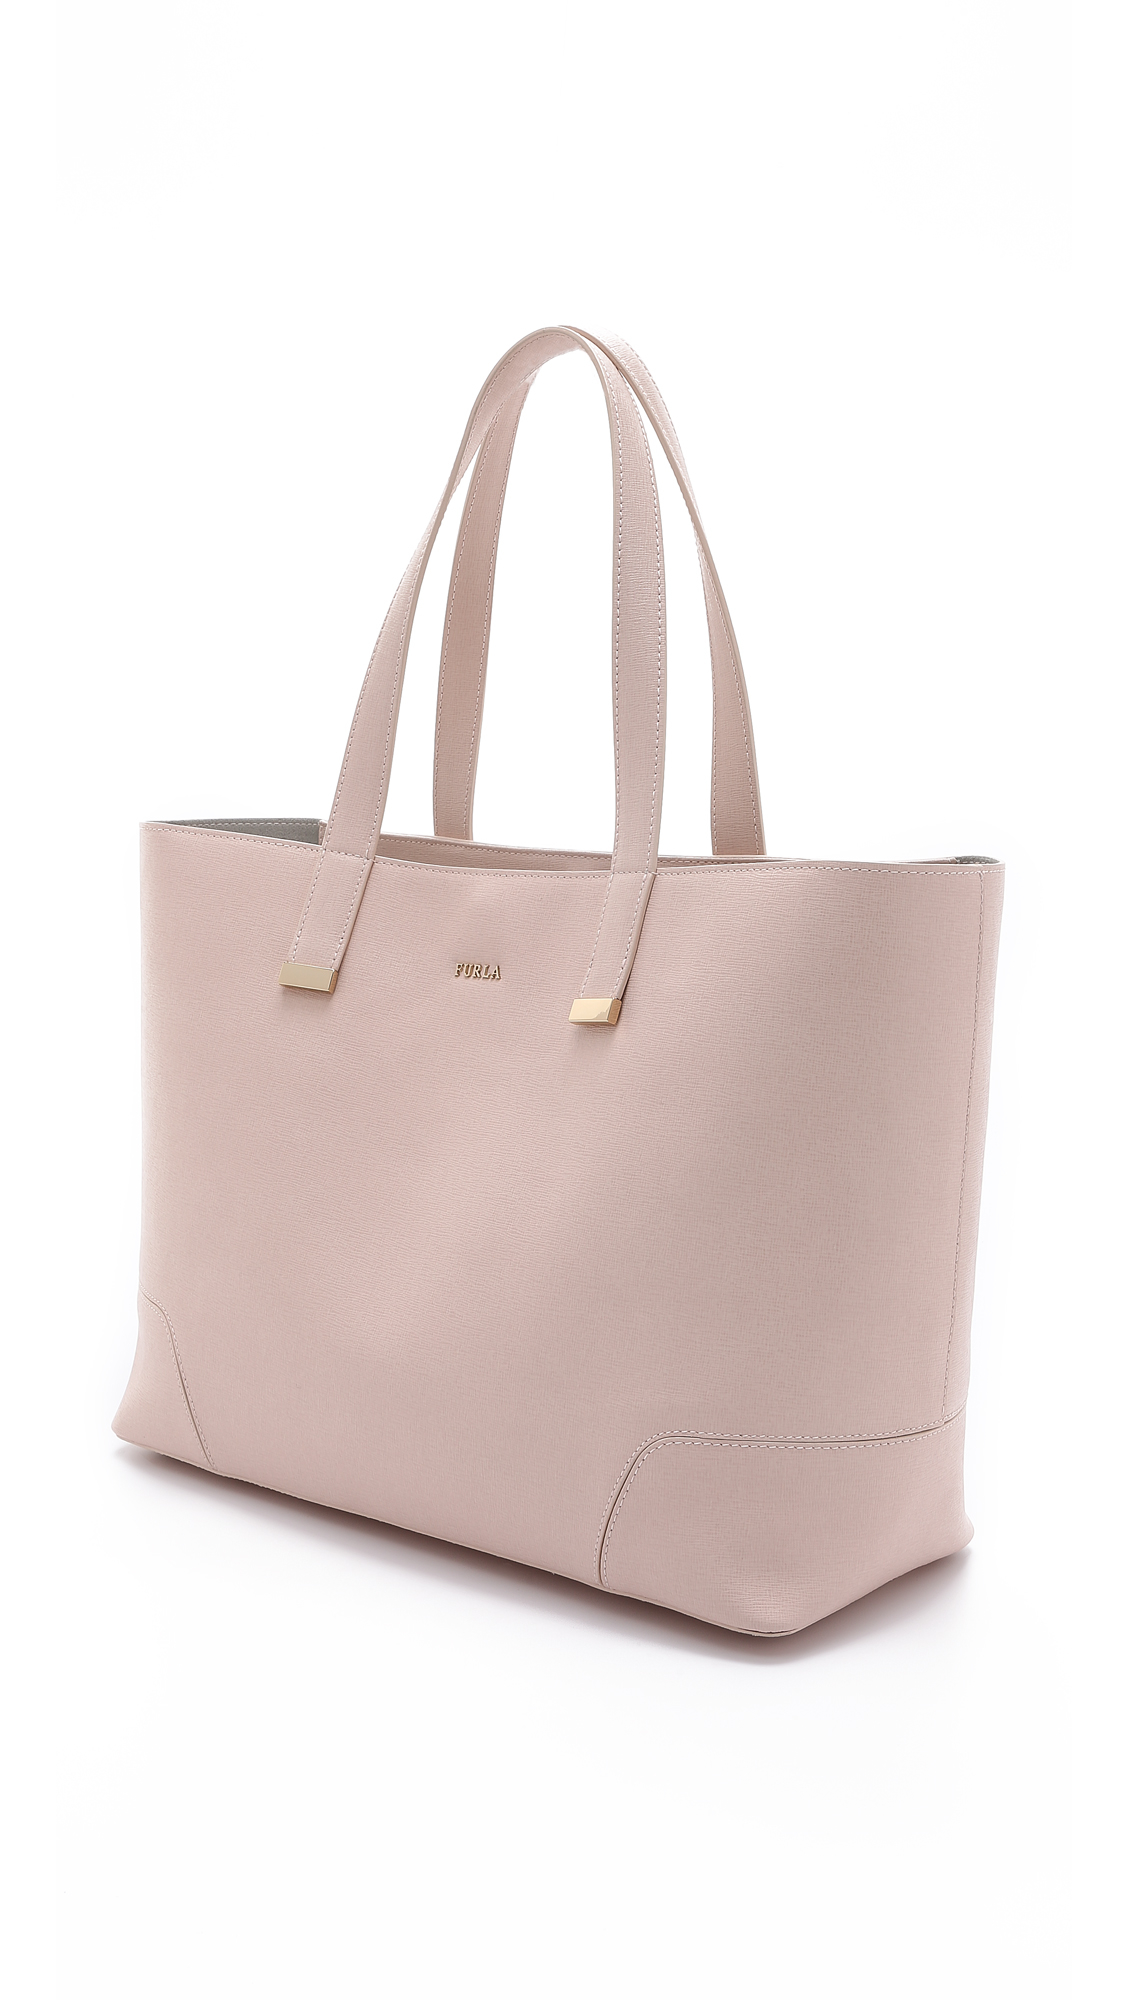 Furla Stacy Large Tote - Pale Pink in Pink | Lyst